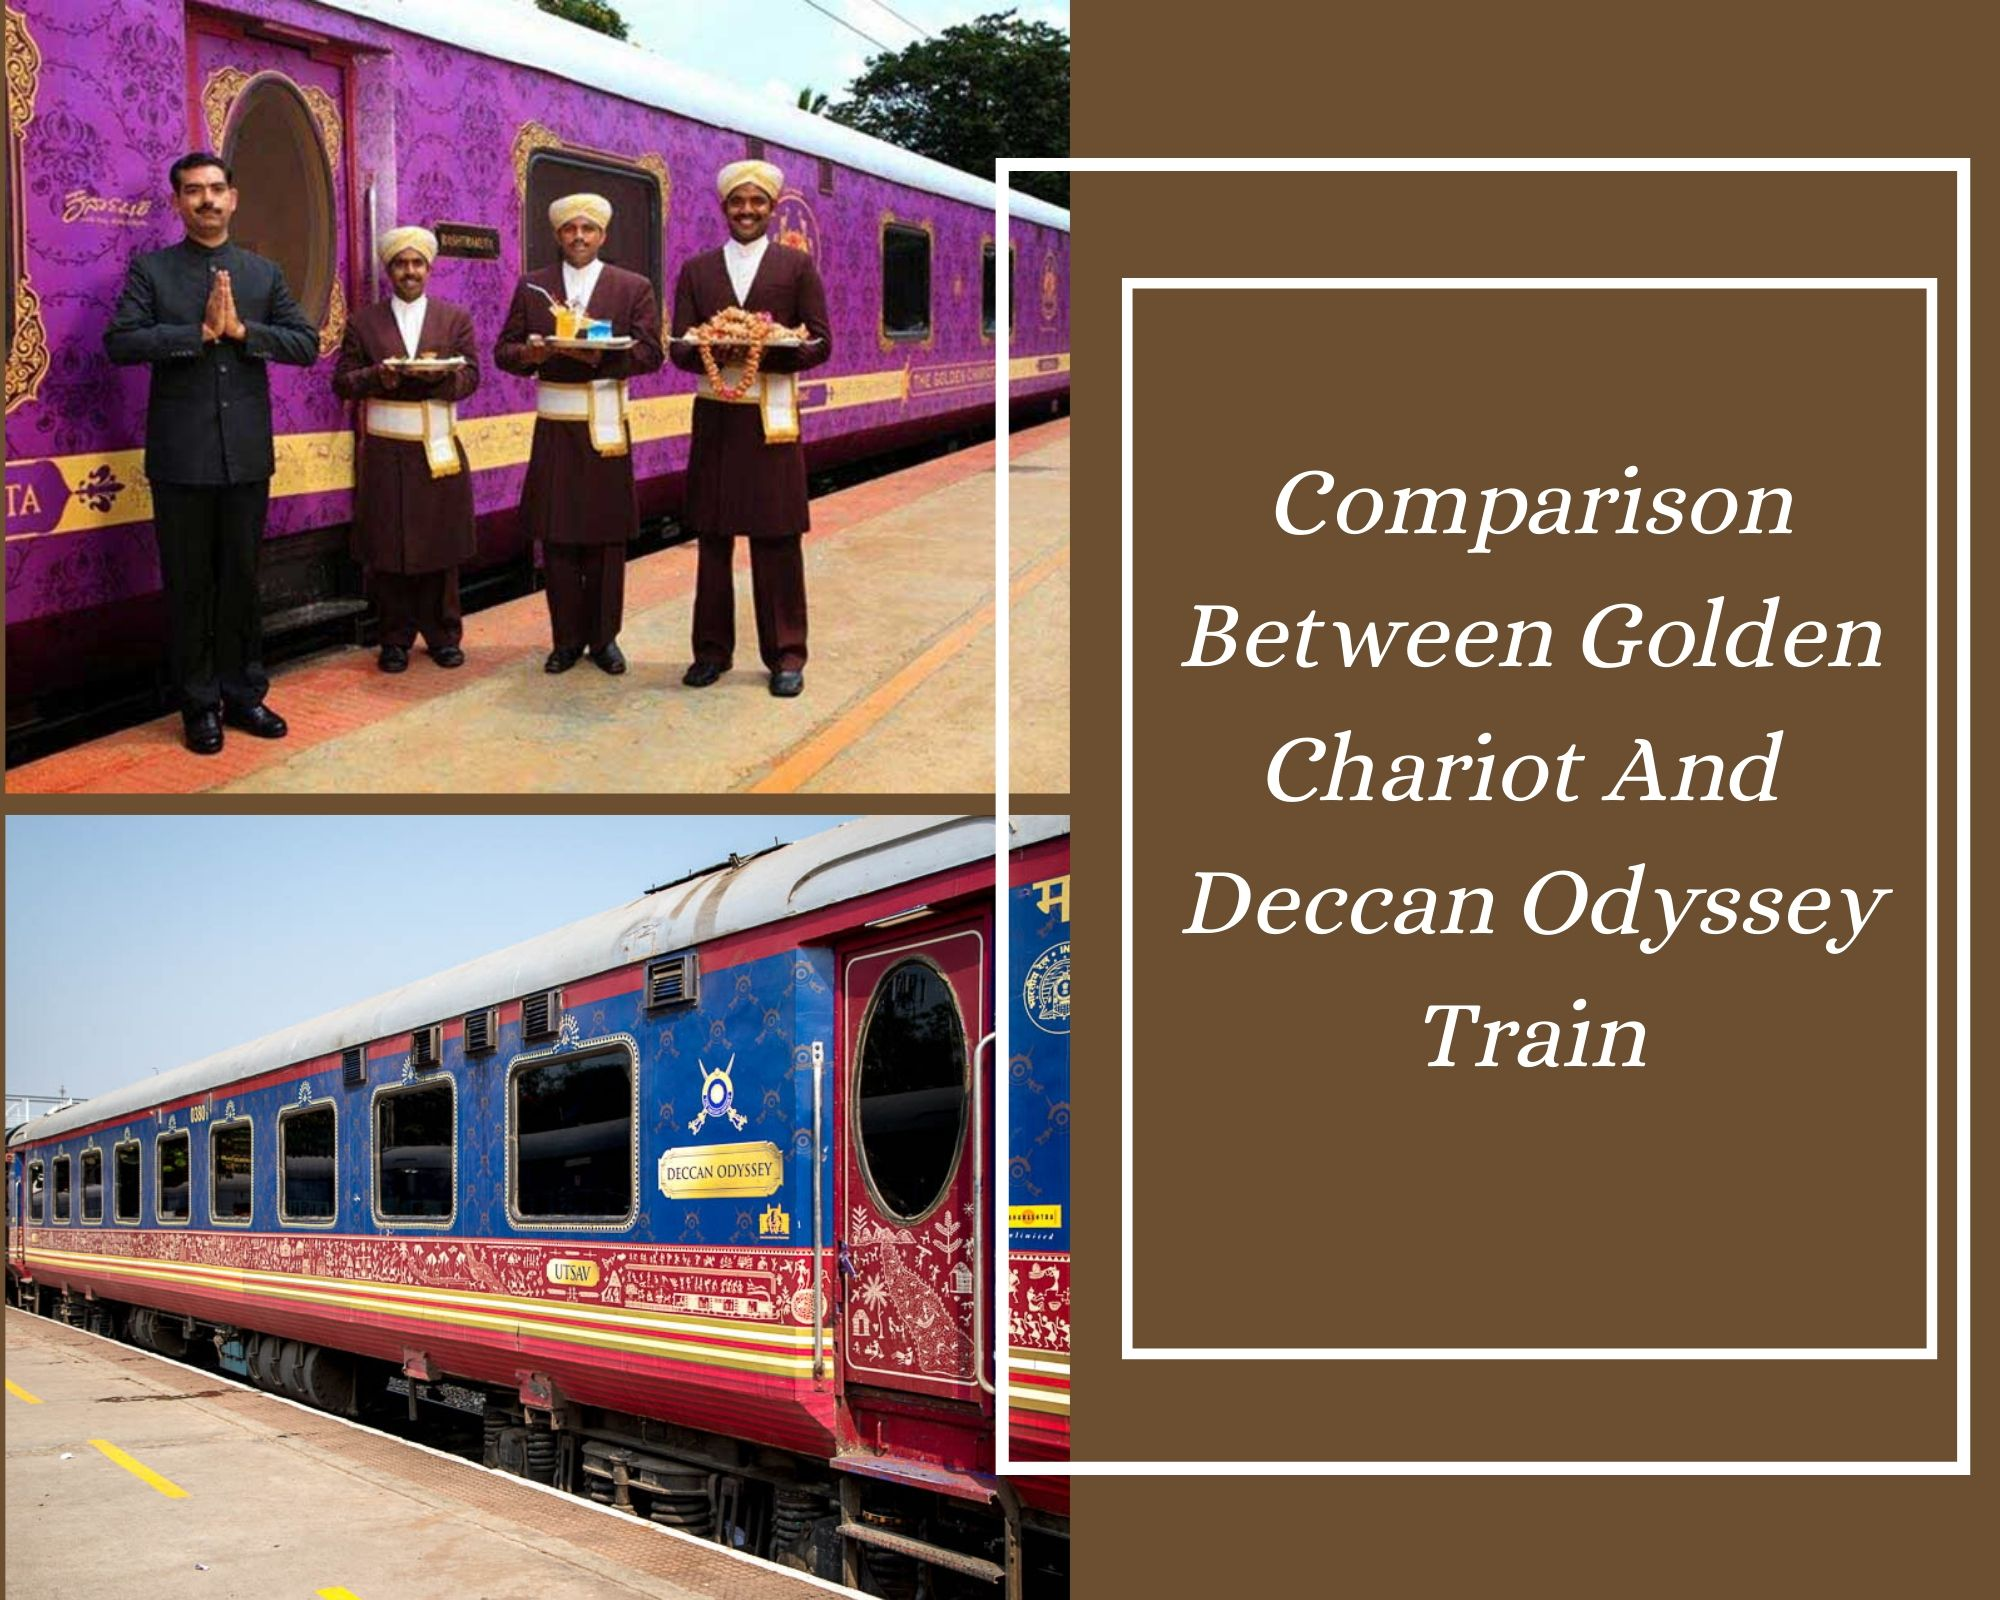 Comparison Between Golden Chariot and Deccan Odyssey Train